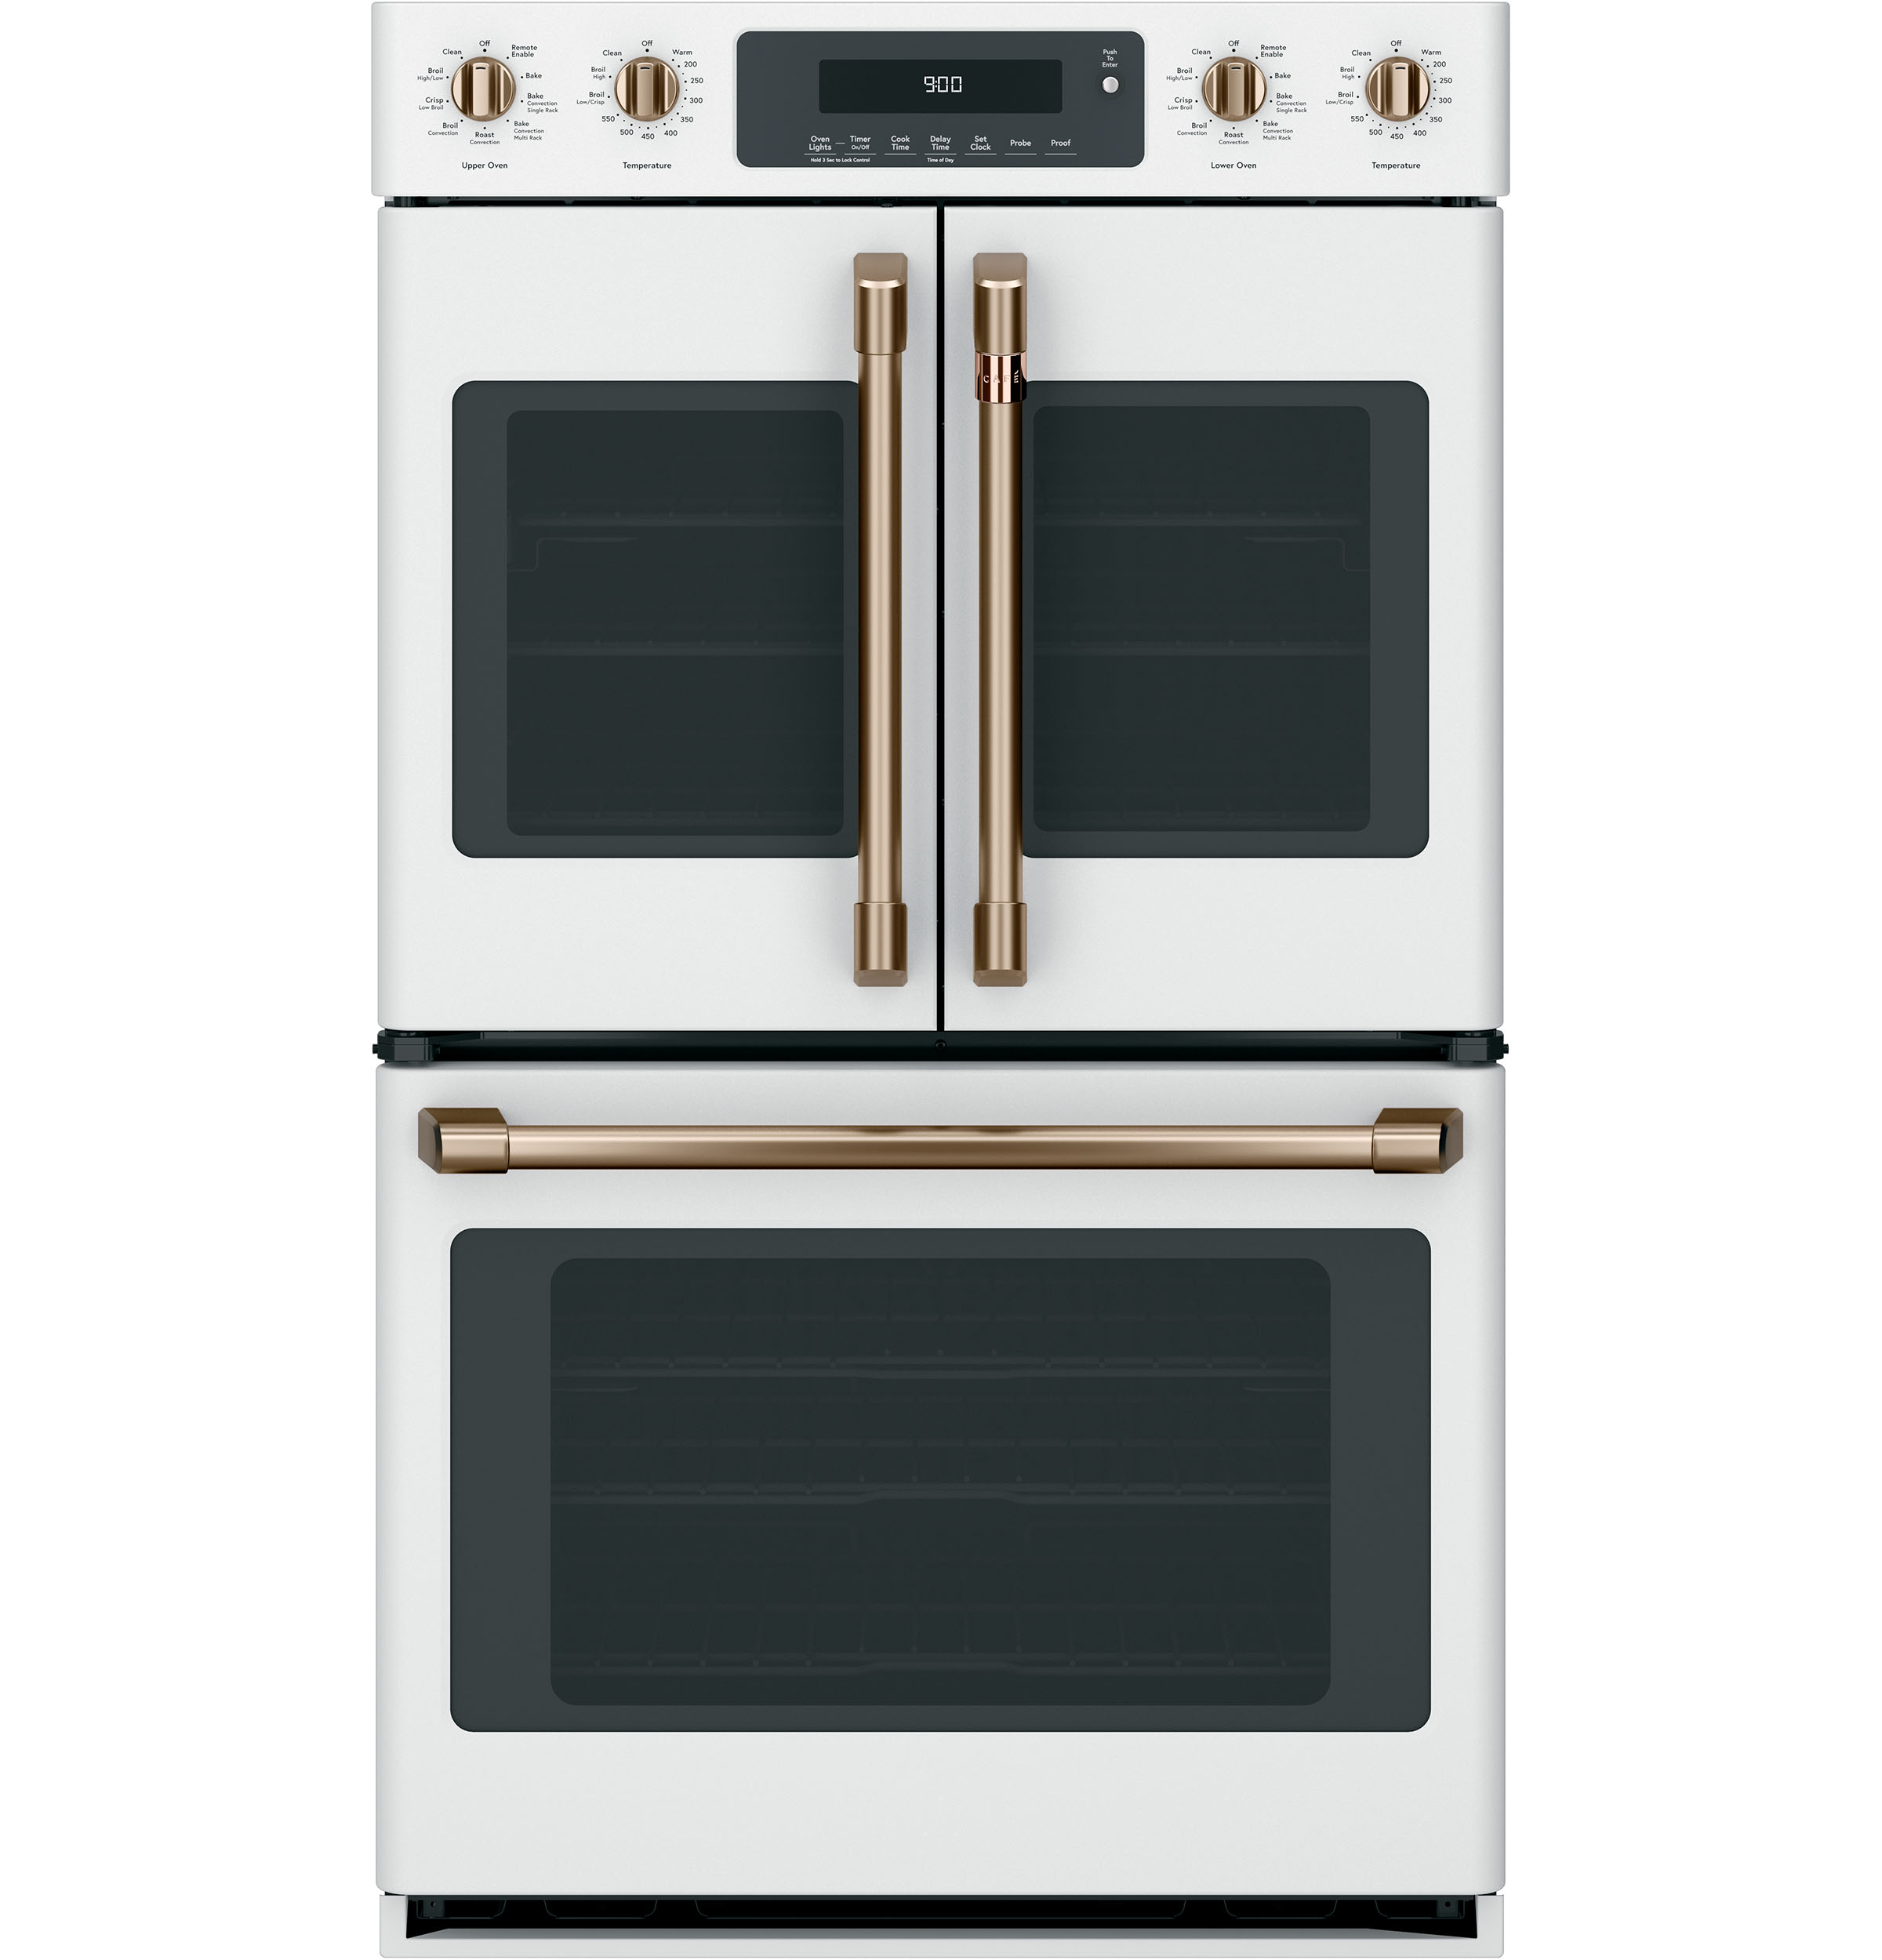 "Cafe Café™ 30"" Smart French-Door, Double Wall Oven with Convection"